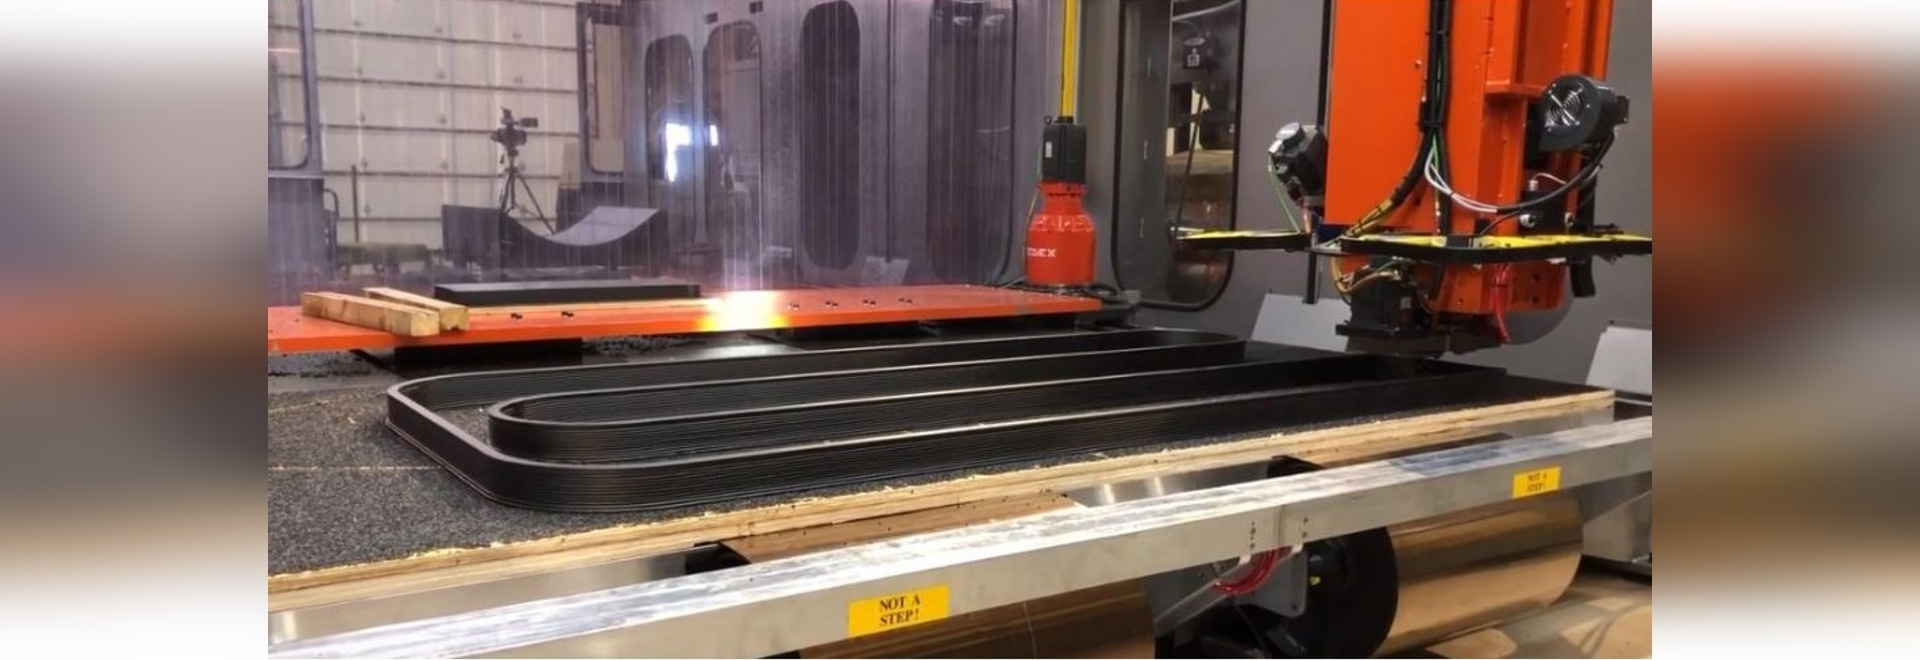 Thermwood unveils high-capacity melt core for its LSAM Print Head